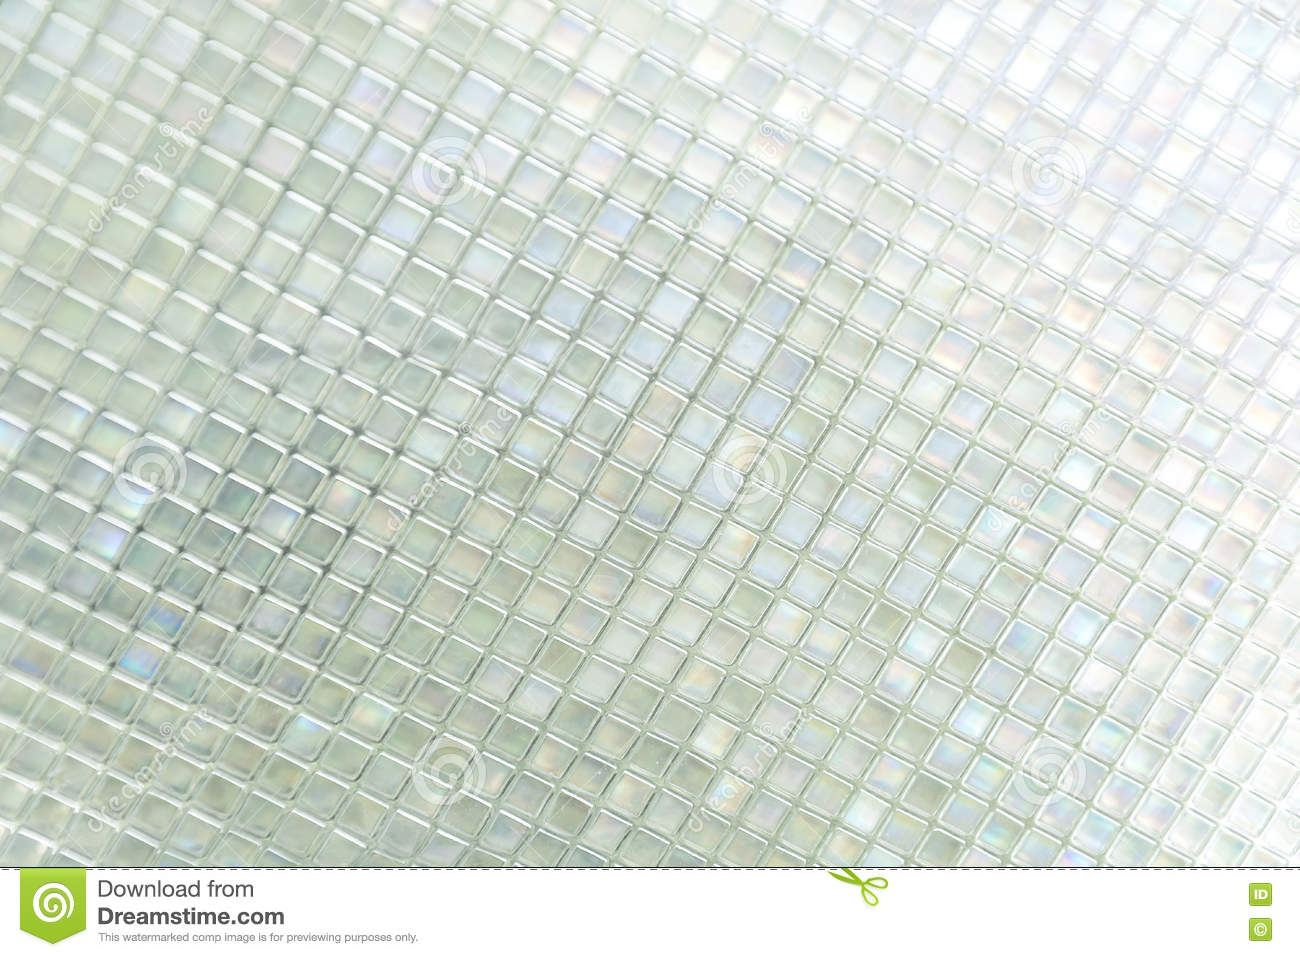 Seamless Blue Glass Tiles Texture Background Stock Photo - Image of ...